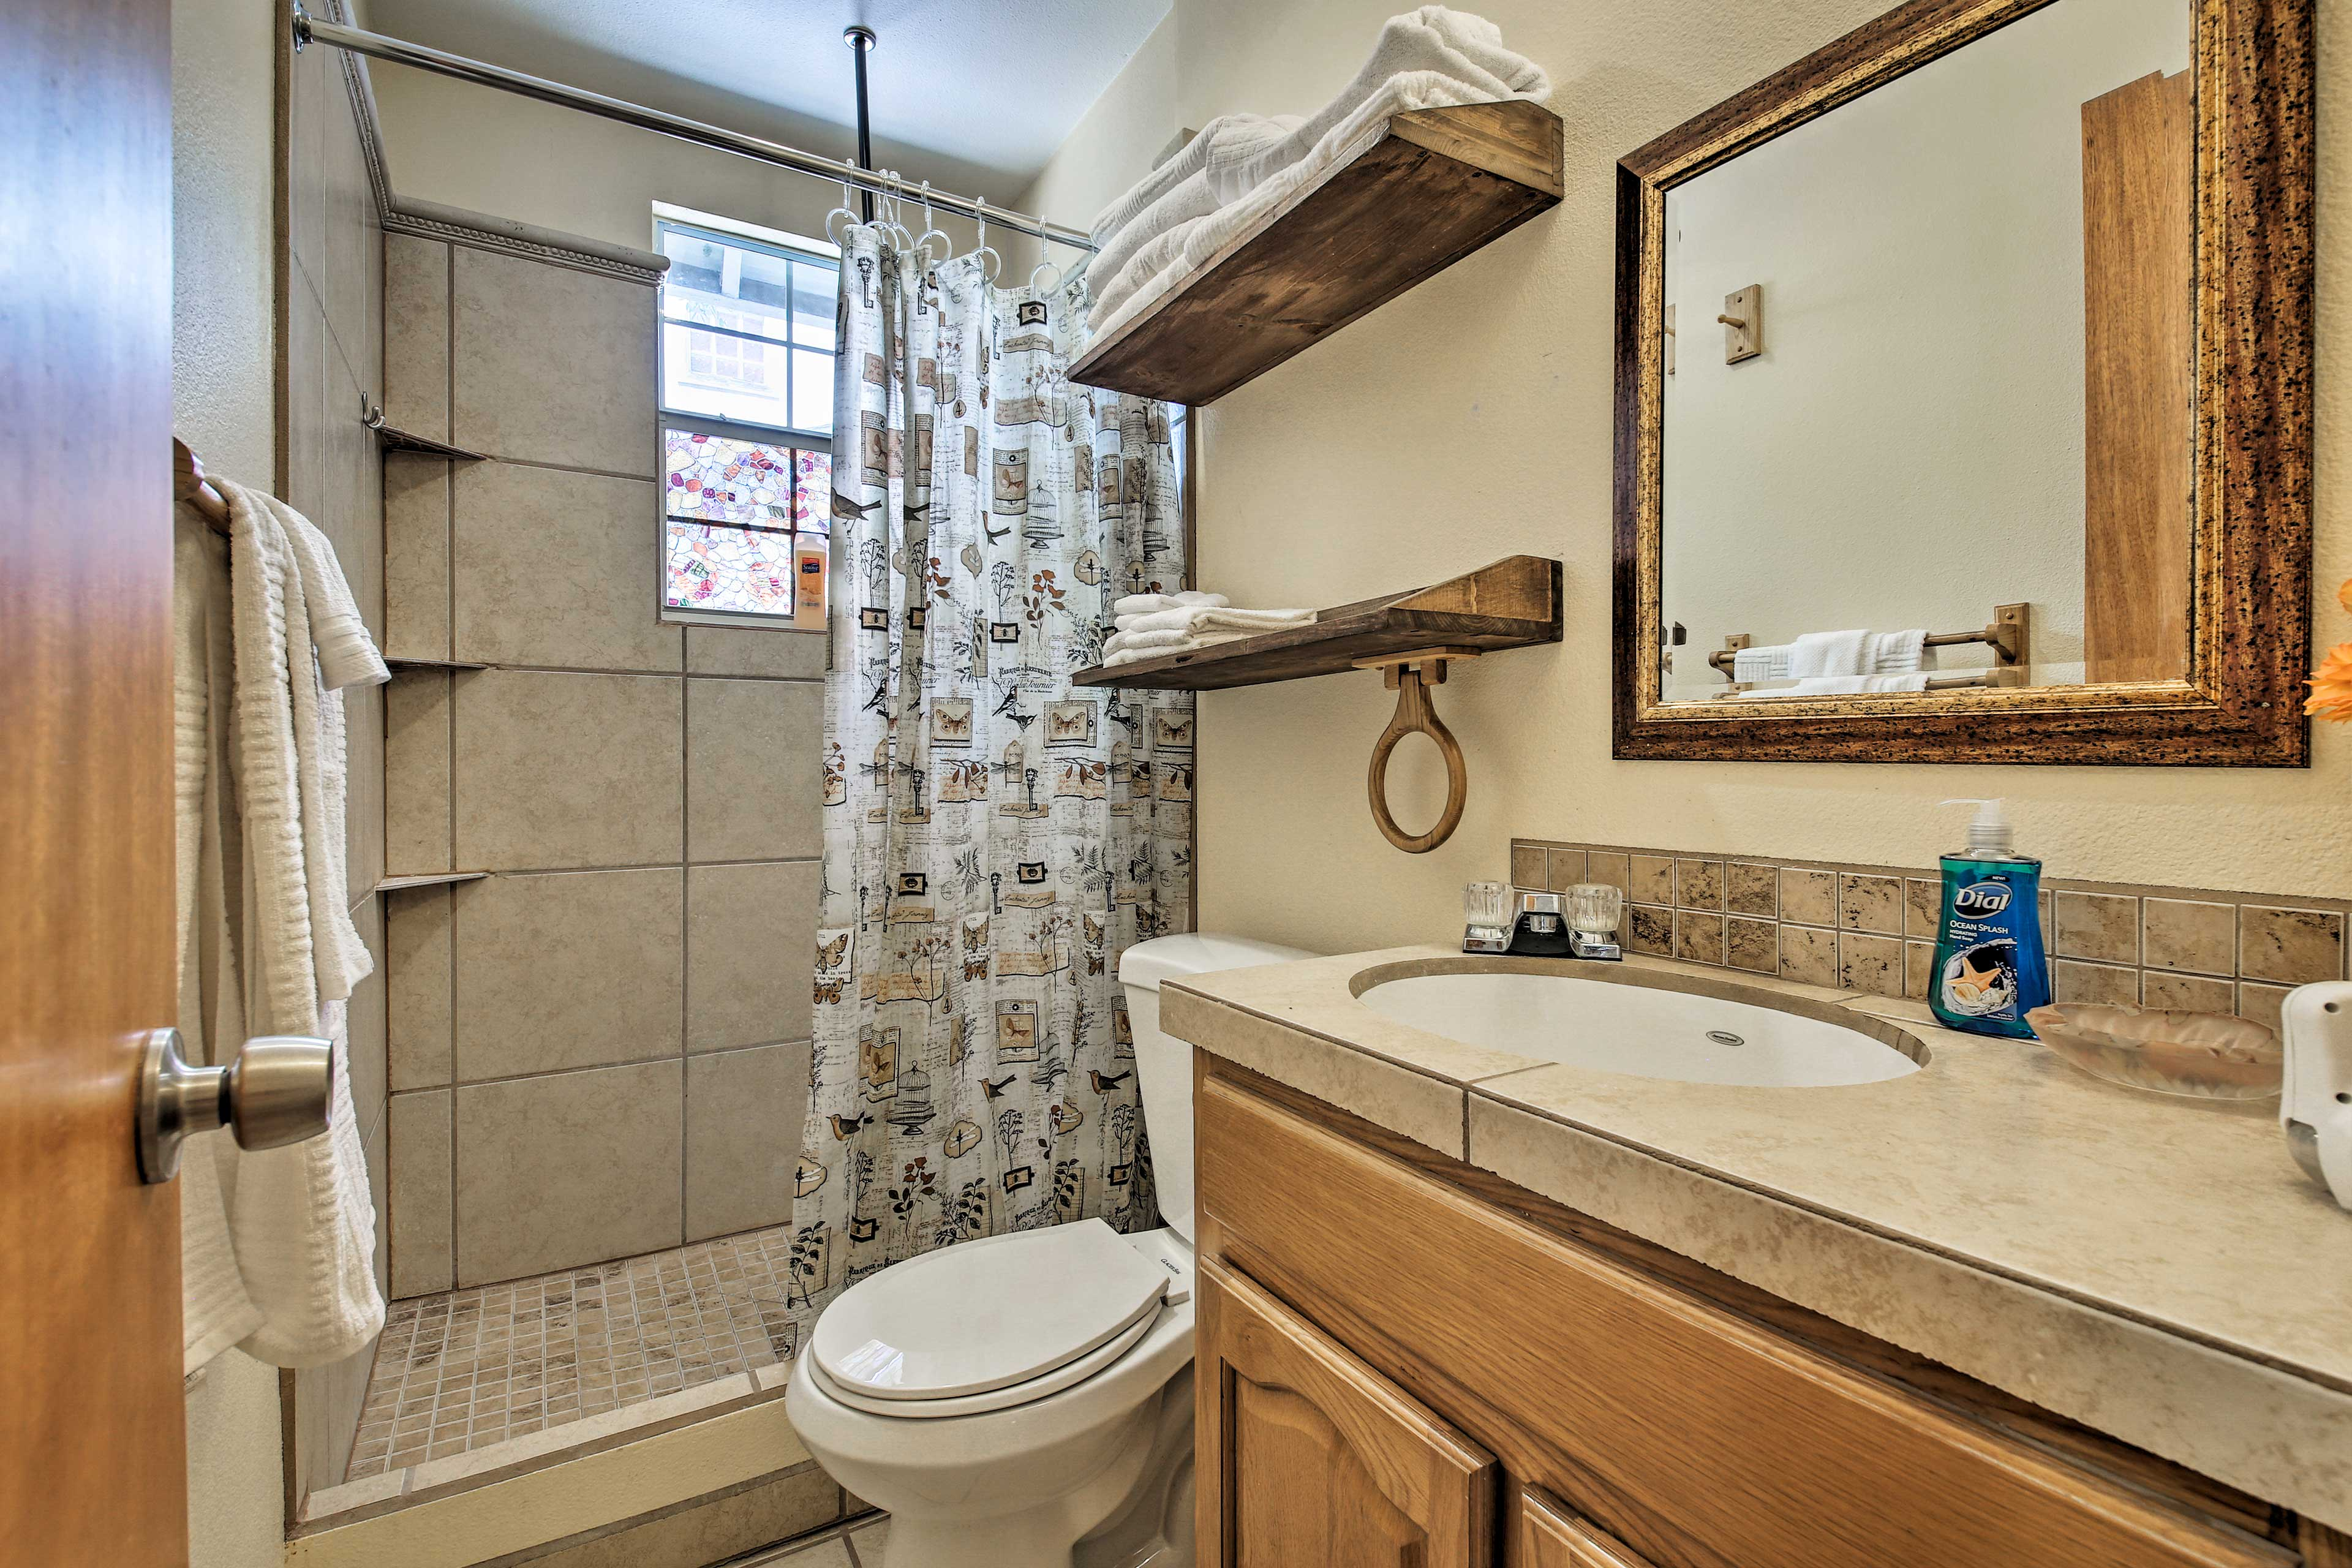 Enjoy a refreshing shower in the second bathroom.